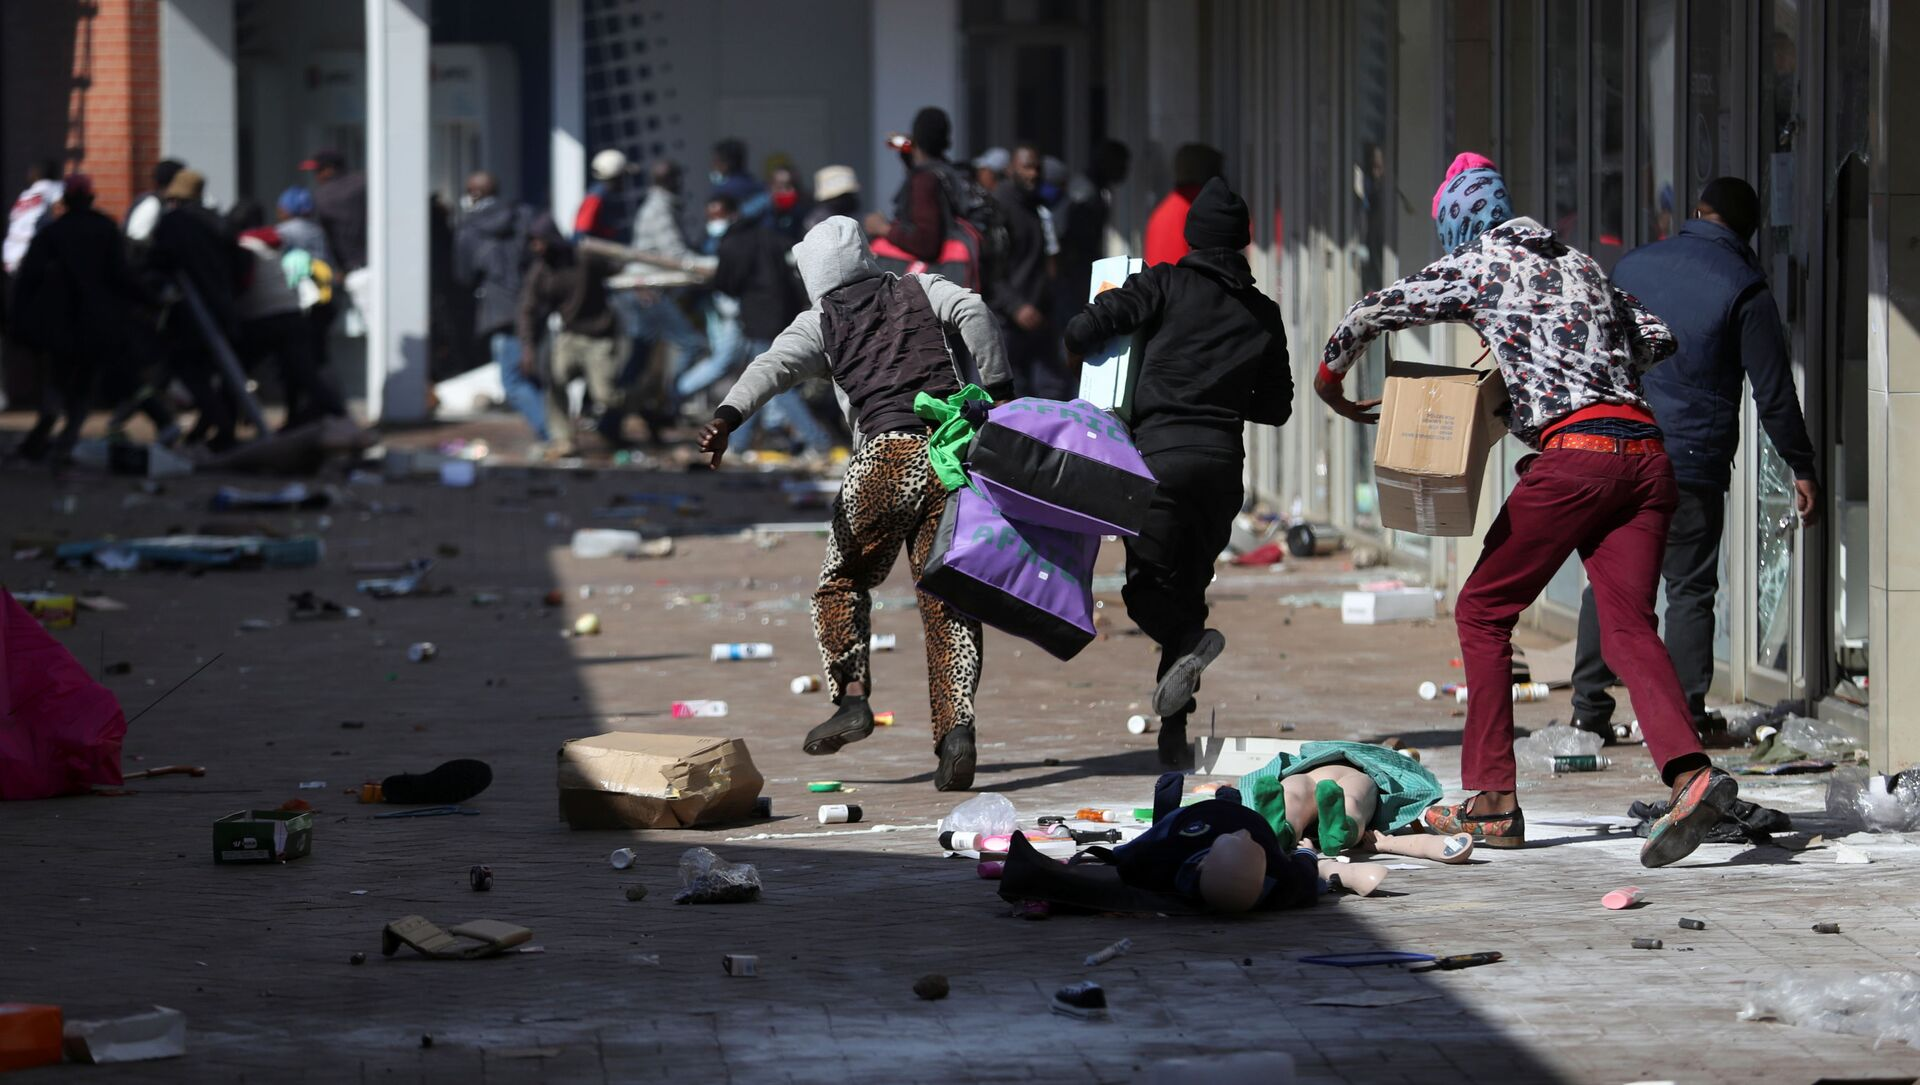 Demonstrators on 12 July 2021 loot stores in Katlehong - about 16 miles south-east of Johannesburg, South Africa - as protests continue in after the imprisonment of former South African President Jacob Zuma. - Sputnik International, 1920, 14.07.2021